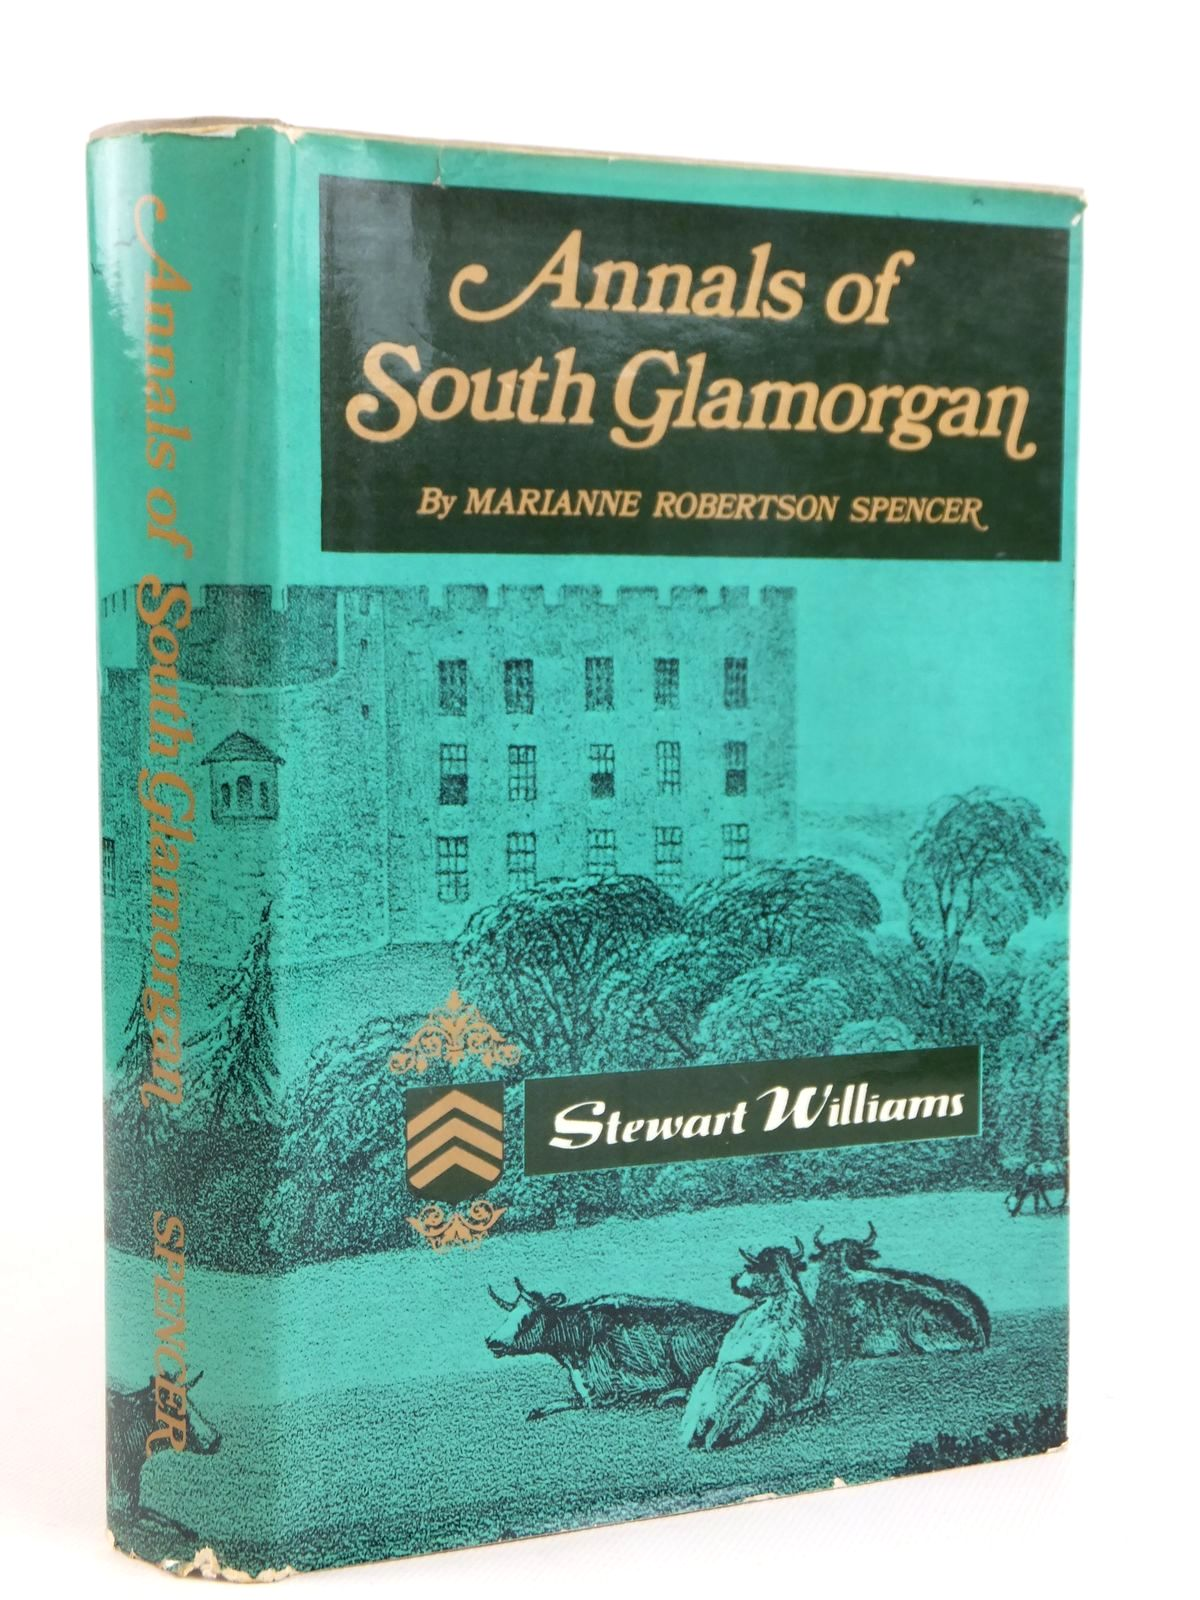 Photo of ANNALS OF SOUTH GLAMORGAN written by Spencer, Marianne Robertson published by Stewart Williams (STOCK CODE: 1608471)  for sale by Stella & Rose's Books